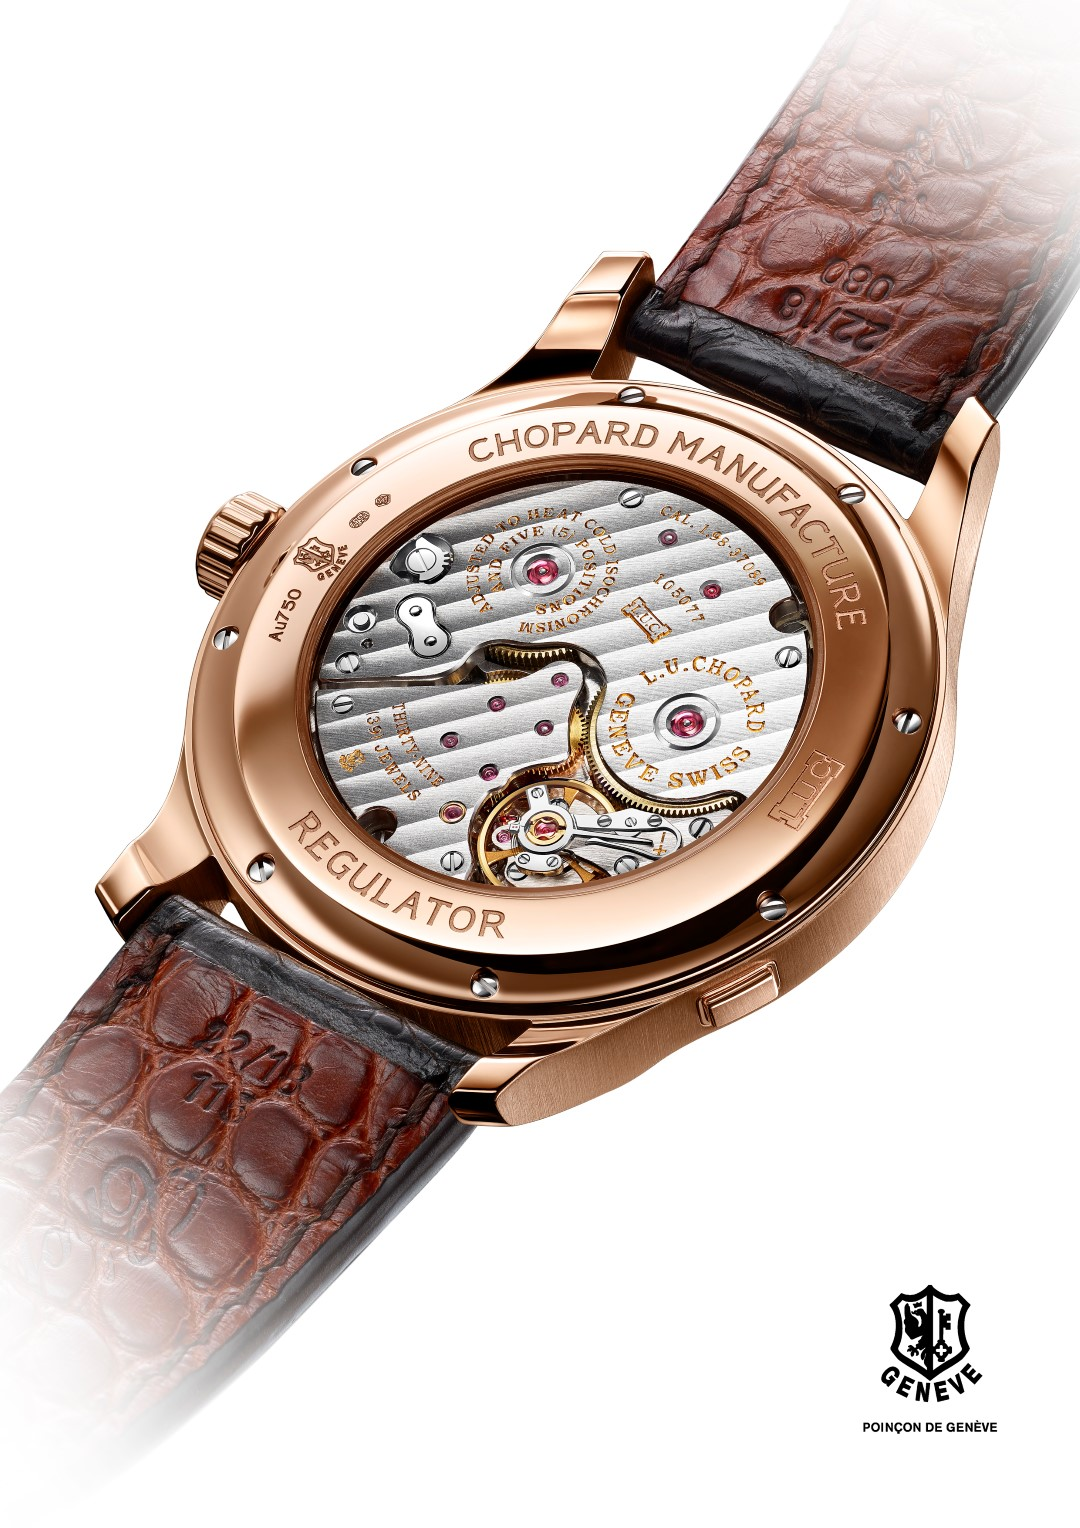 Chopard L.U.C Regulator - trasera